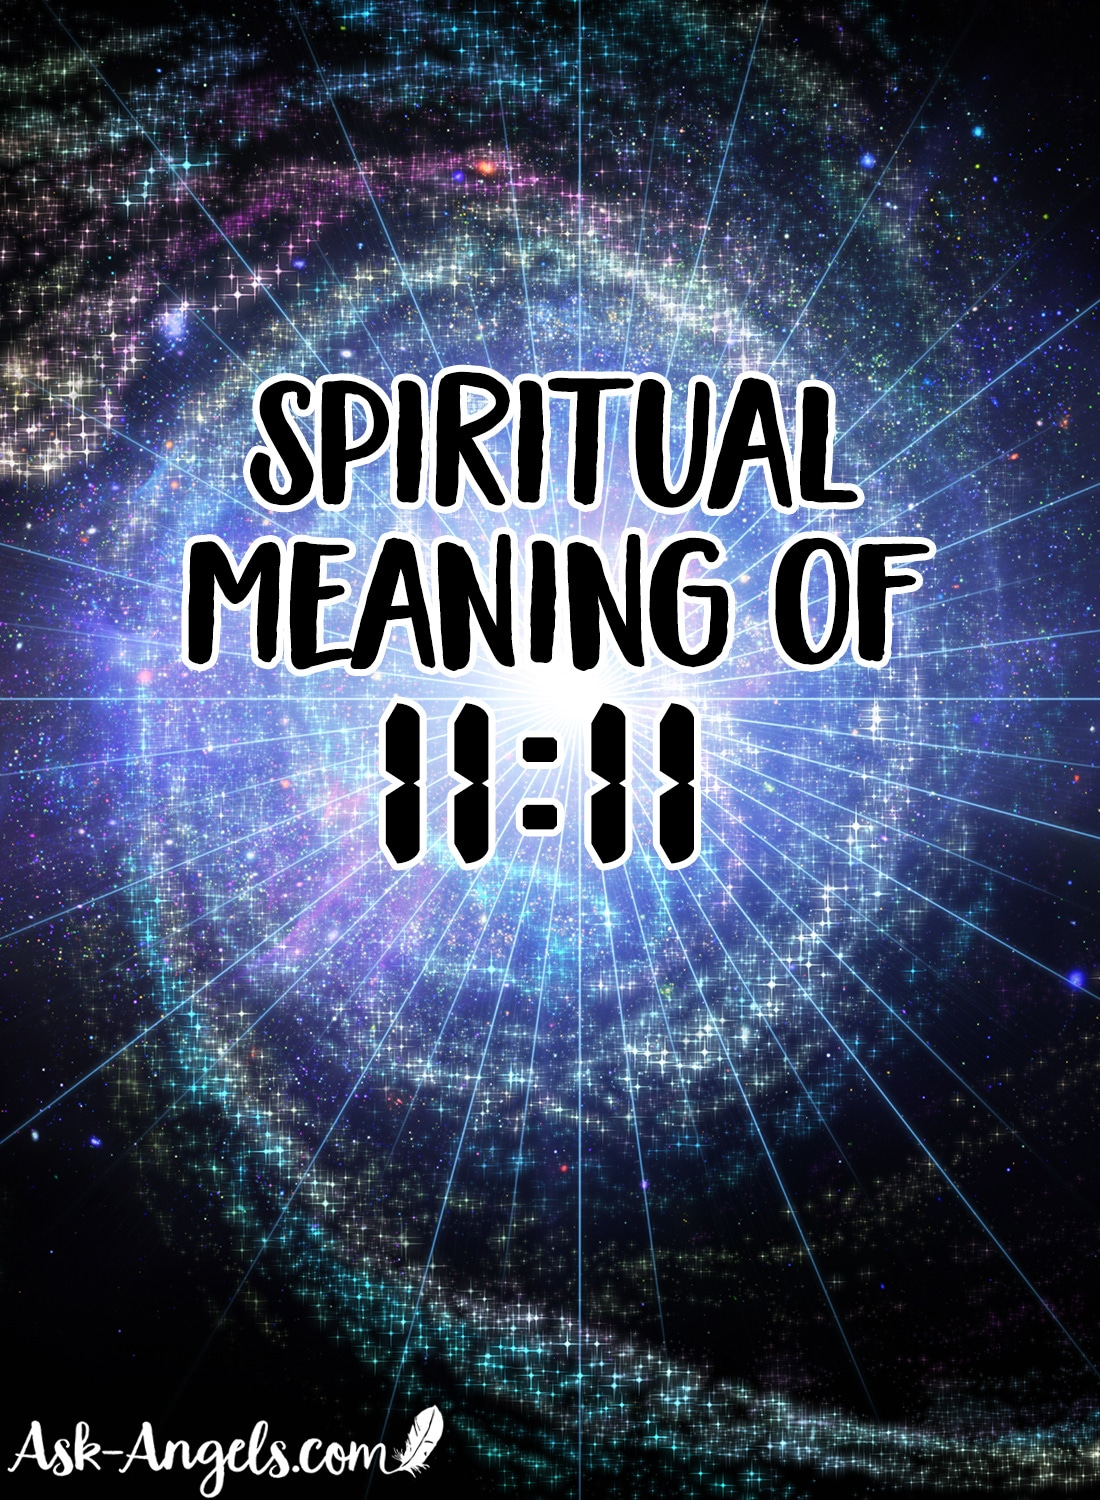 Spiritual Meaning of Seeing 1111